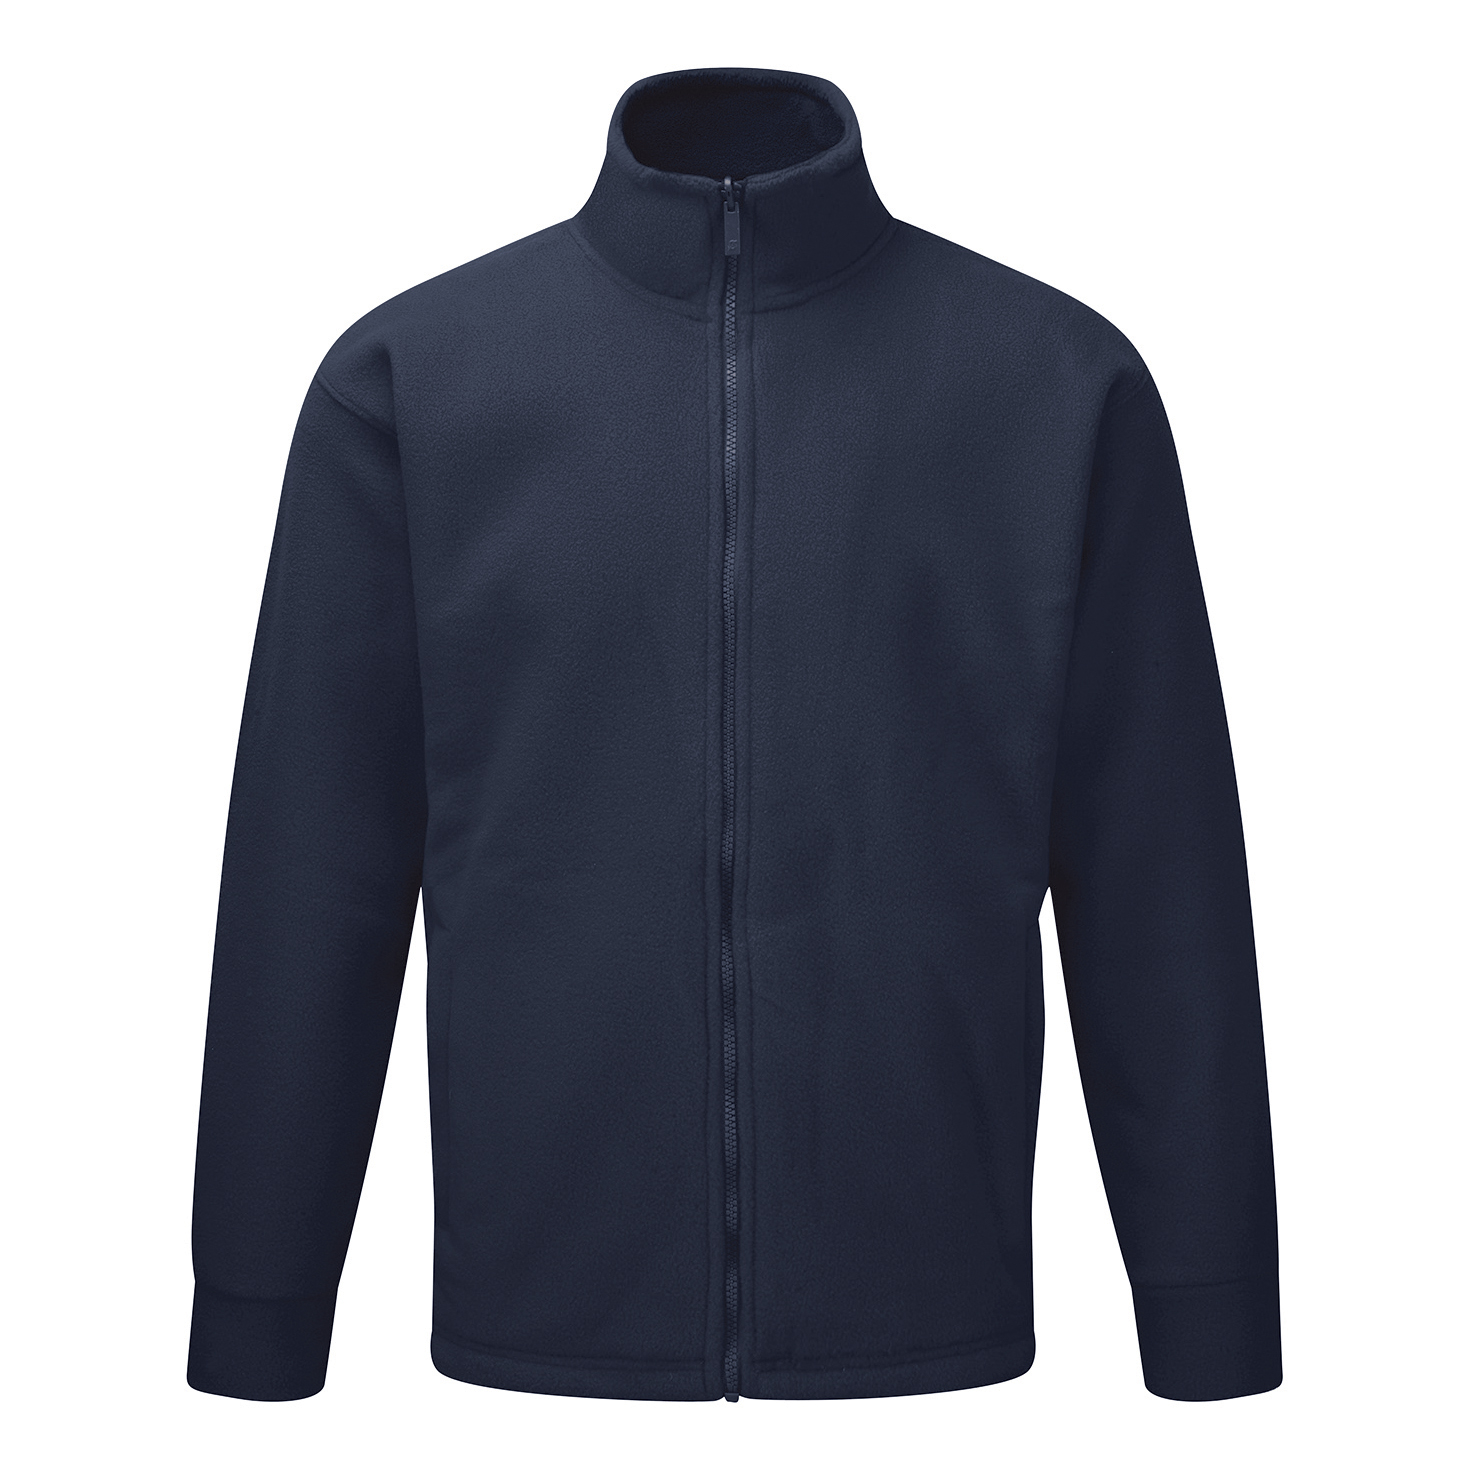 ST Basic Fleece Jacket Elasticated Cuffs and Full Zip Front Small Navy Ref 59091 *Approx 3 Day Leadtime*